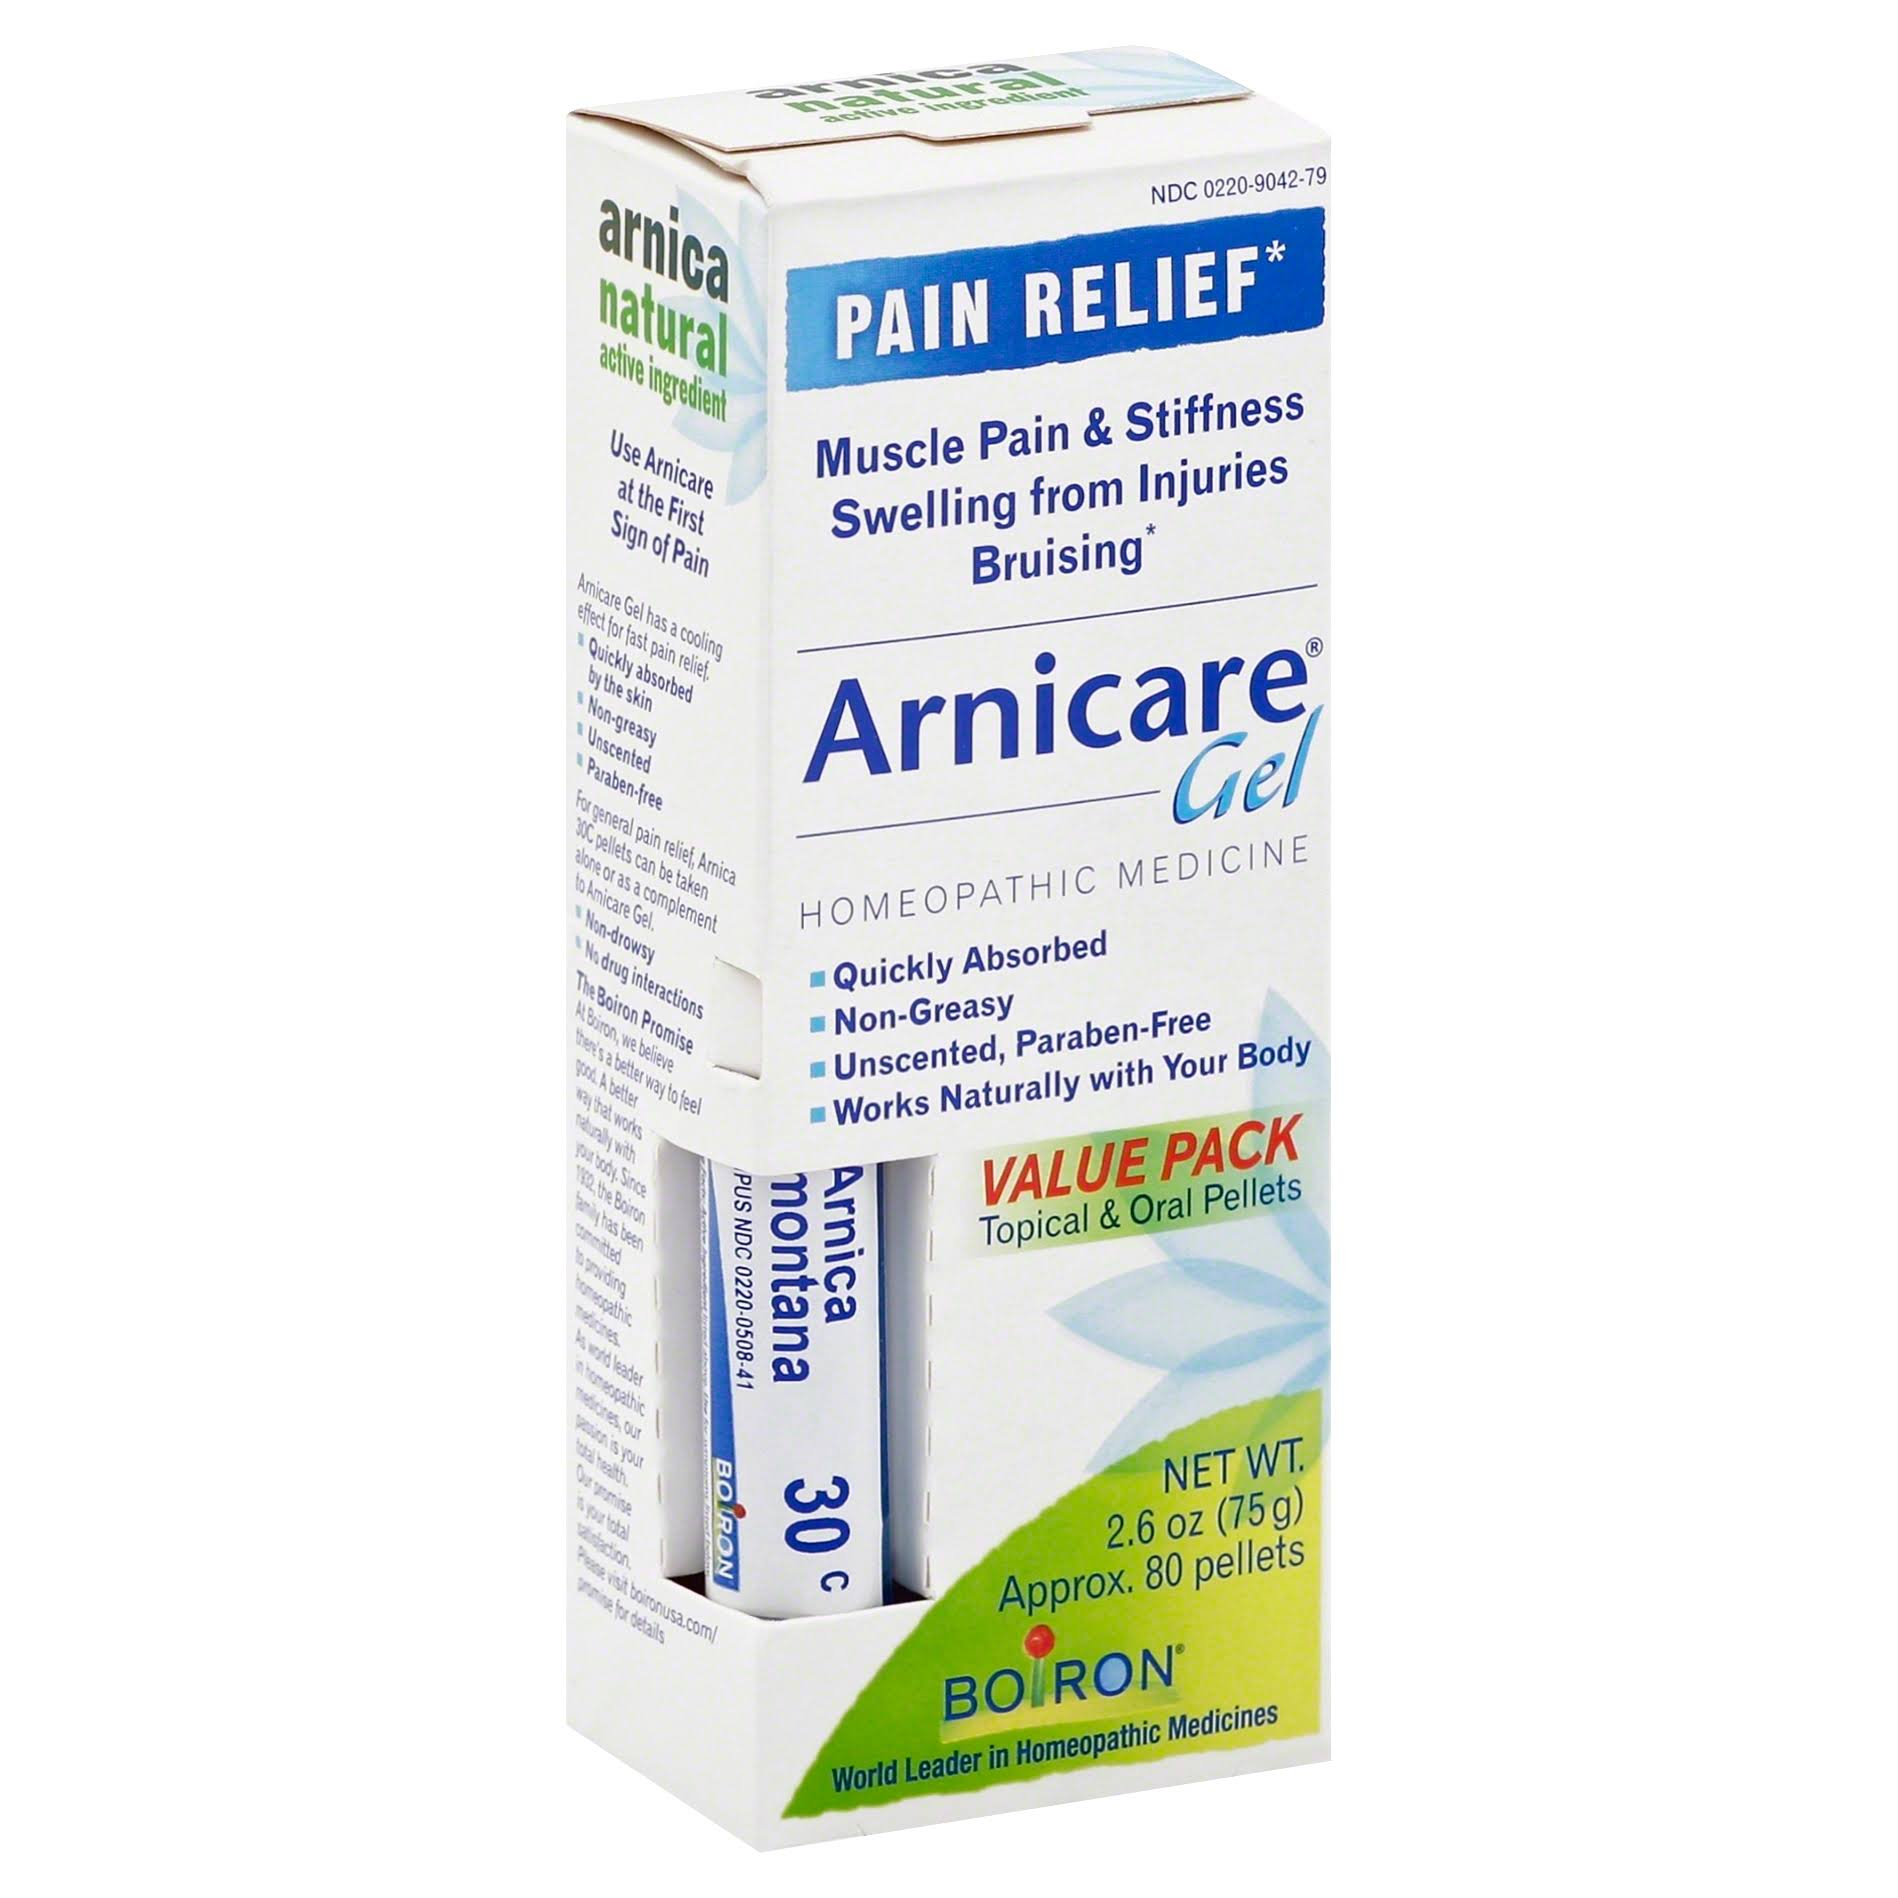 Boiron Arnicare Homeopathic Medicine Pain Relief Gel Value Pack - 2.6oz